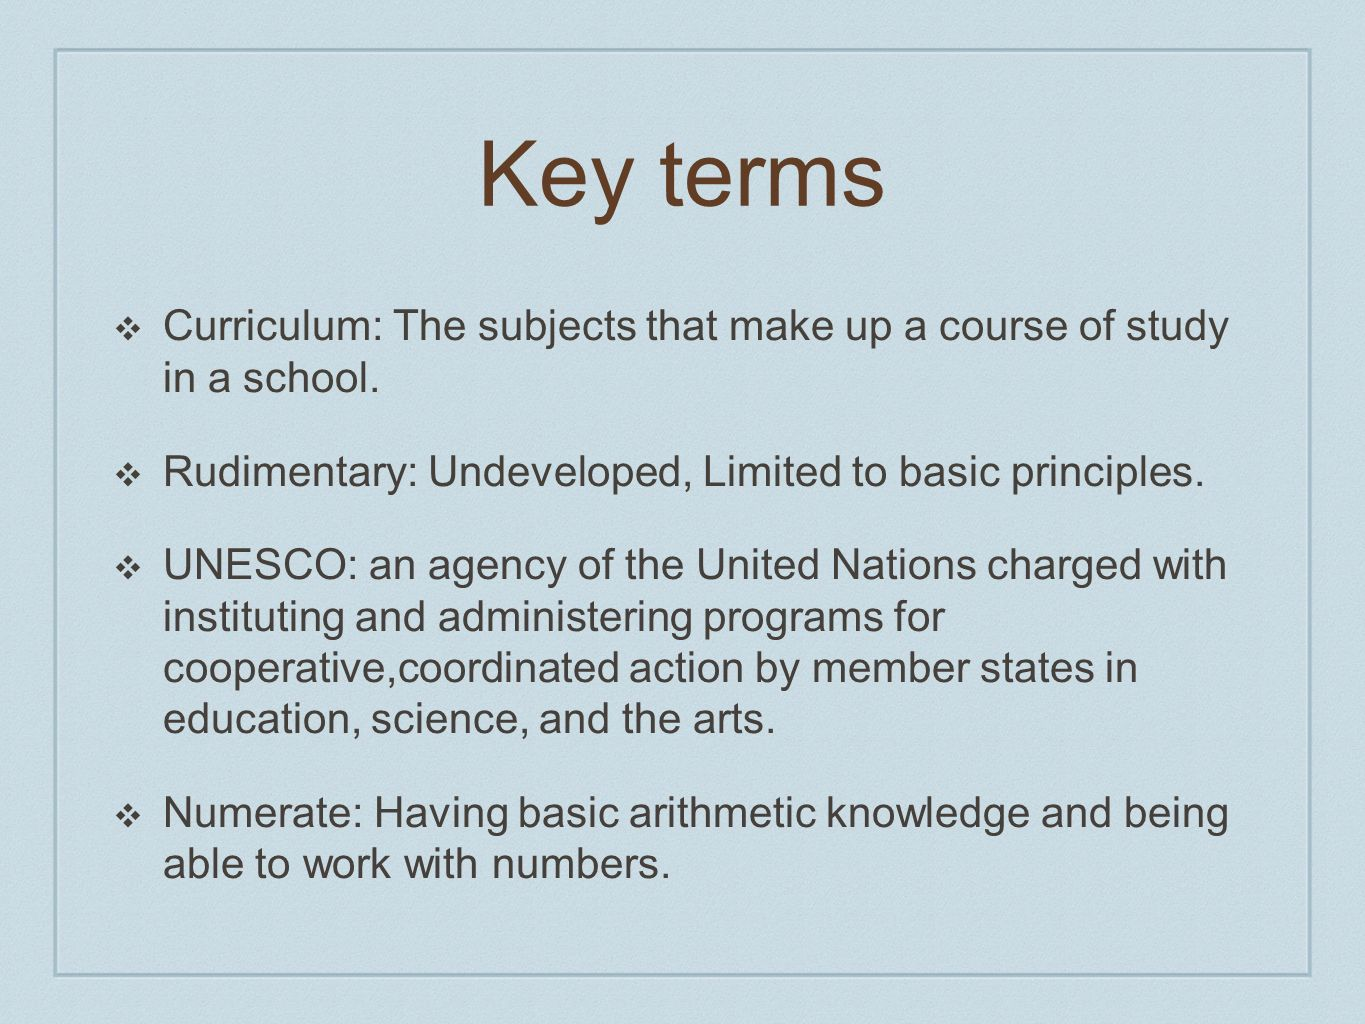 Key terms Curriculum: The subjects that make up a course of study in a school. Rudimentary: Undeveloped, Limited to basic principles. UNESCO: an agenc